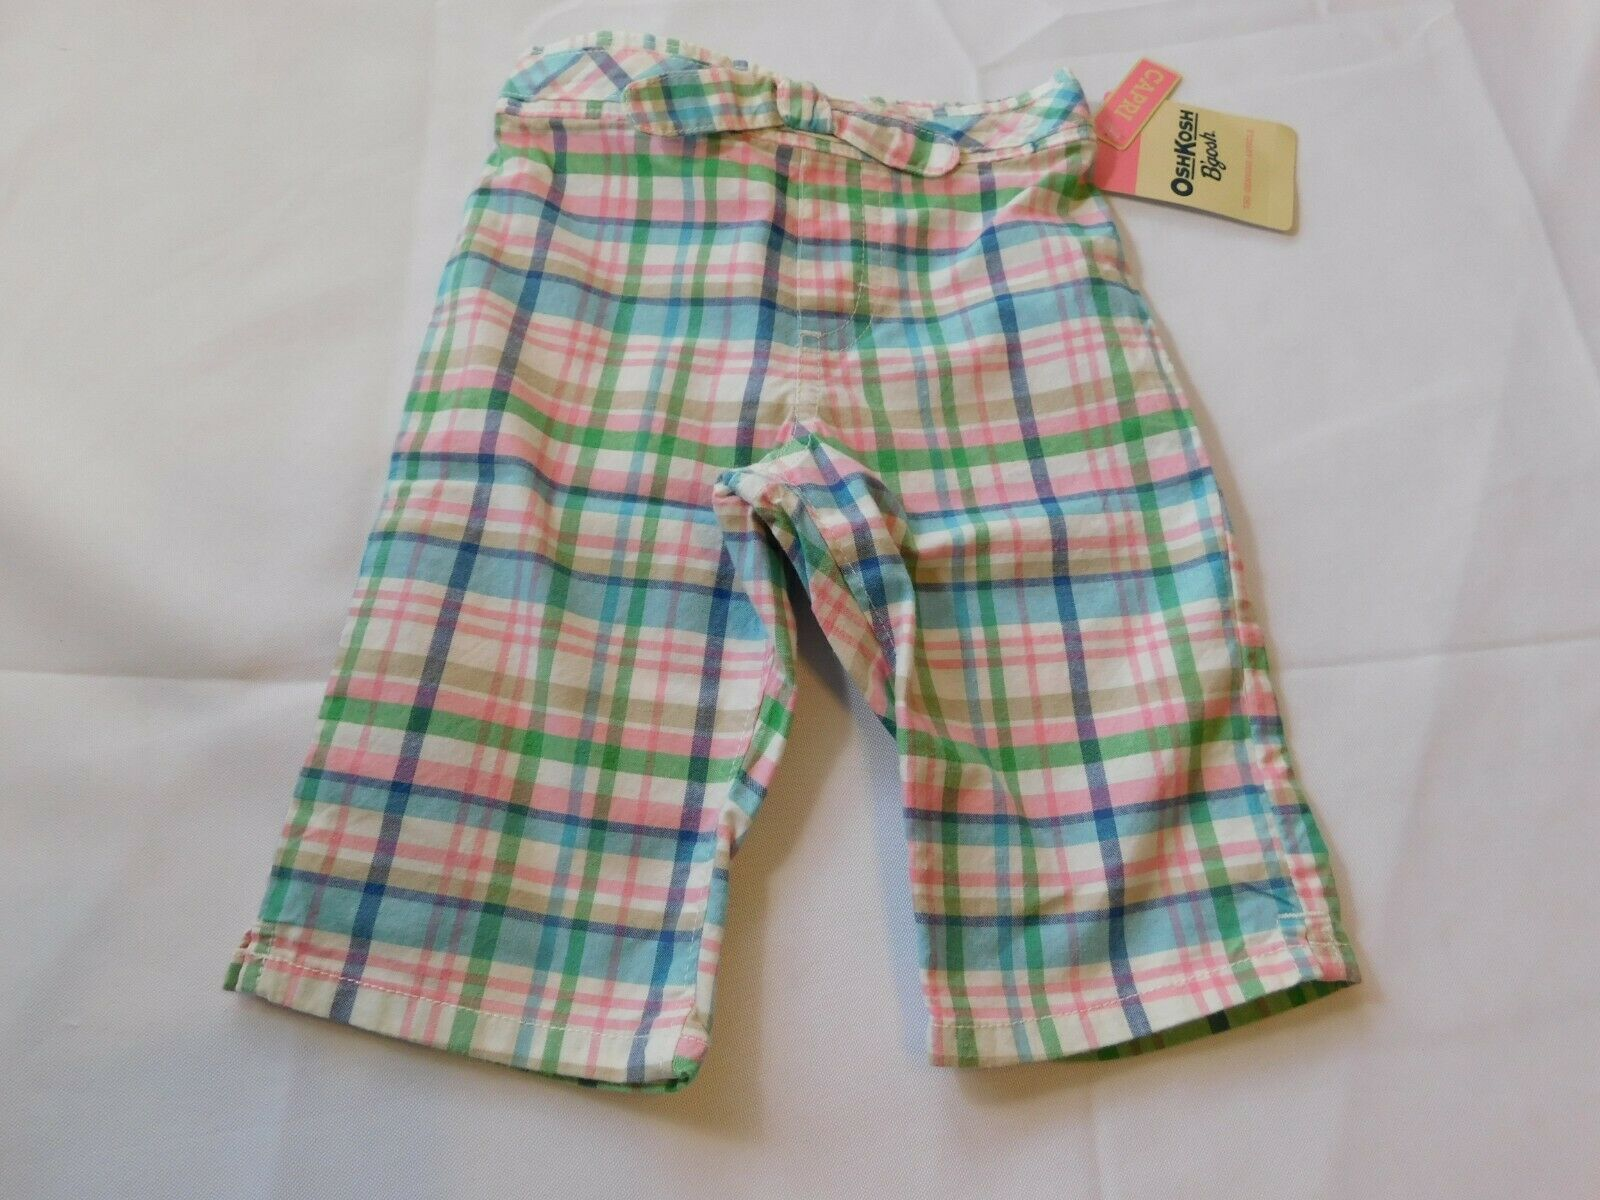 Primary image for Osh Kosh B'gosh Youth Girl's Size 12 Months Capri Pants Cropped Multi Plaid NWT